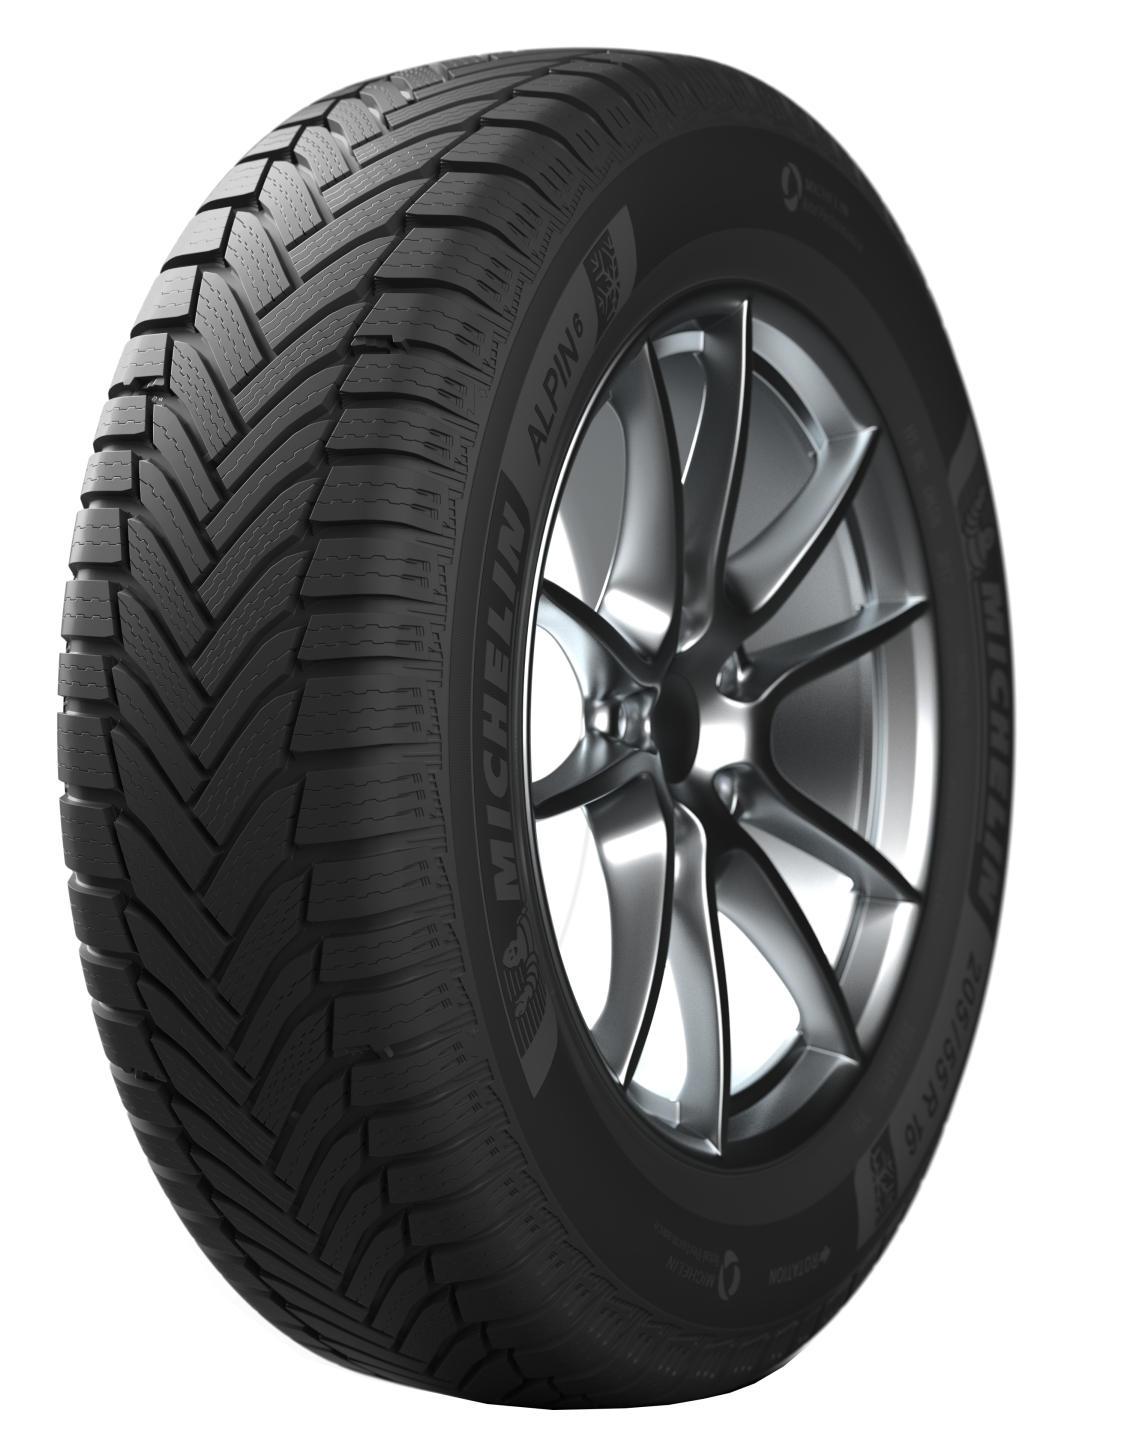 MICHELIN 185/65 R15 Alpin 6 88T